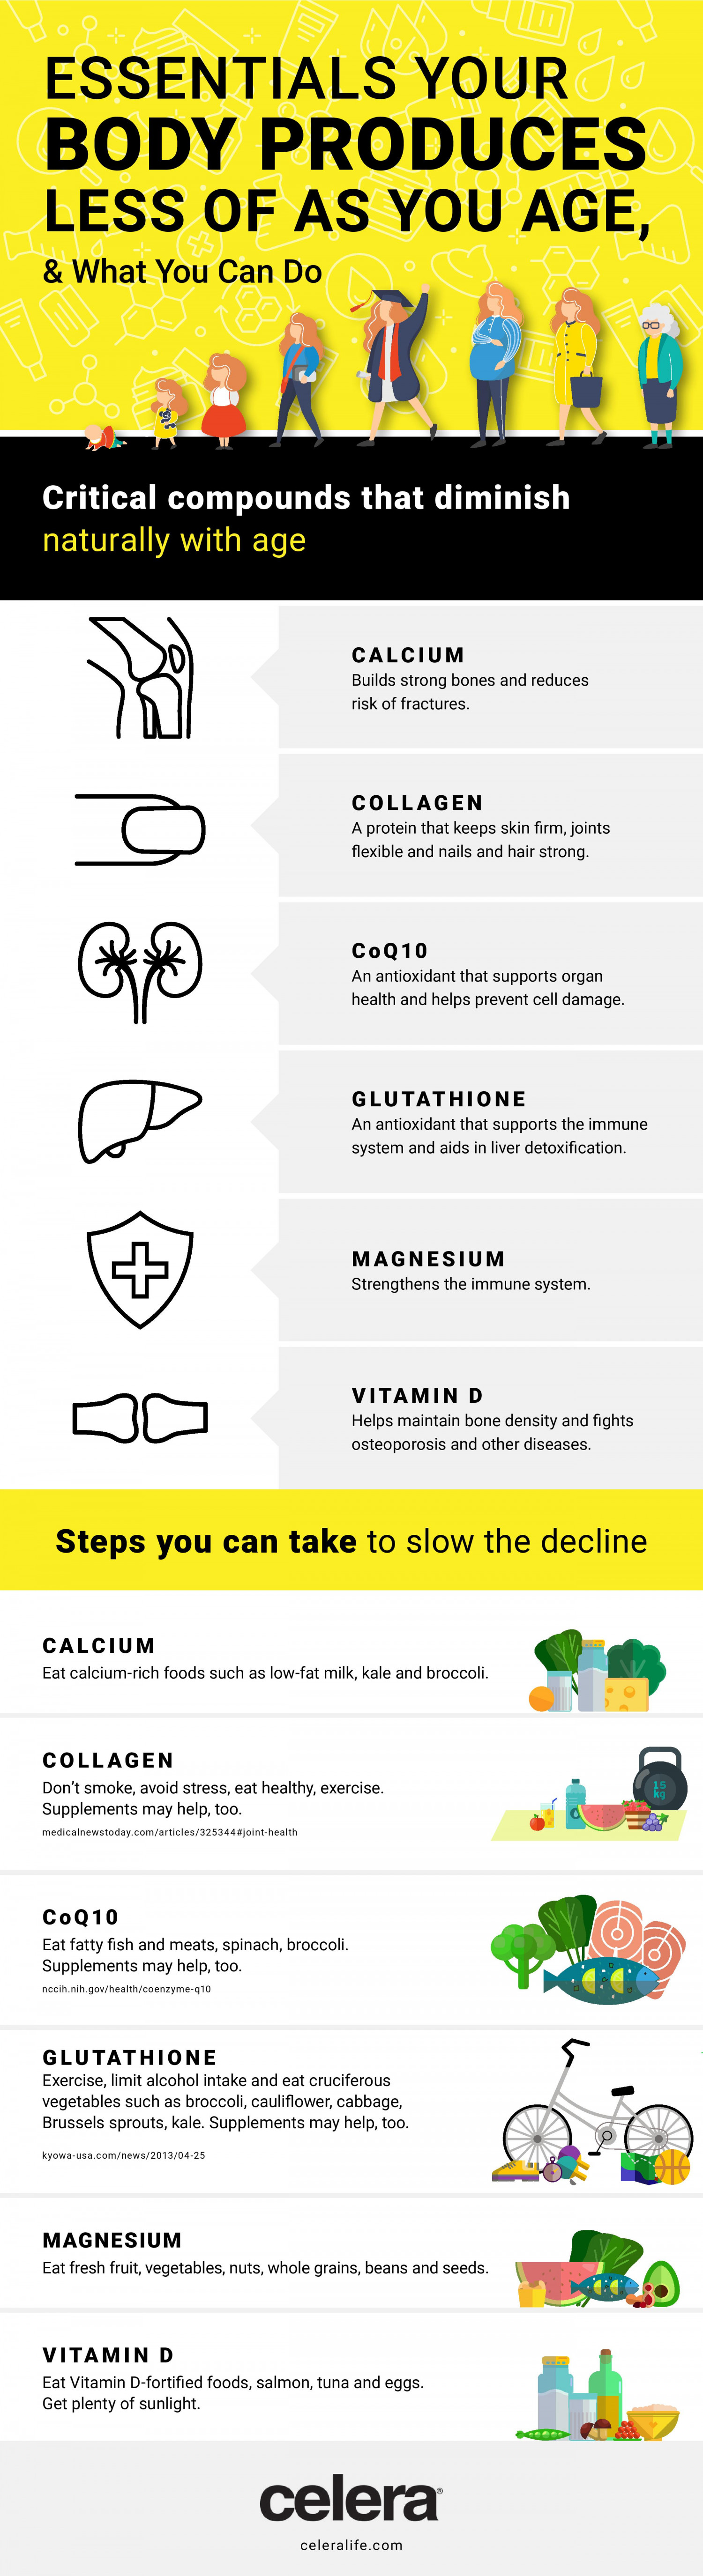 Essentials Your Body Produces Less Of As You Age & What You Can Do Infographic